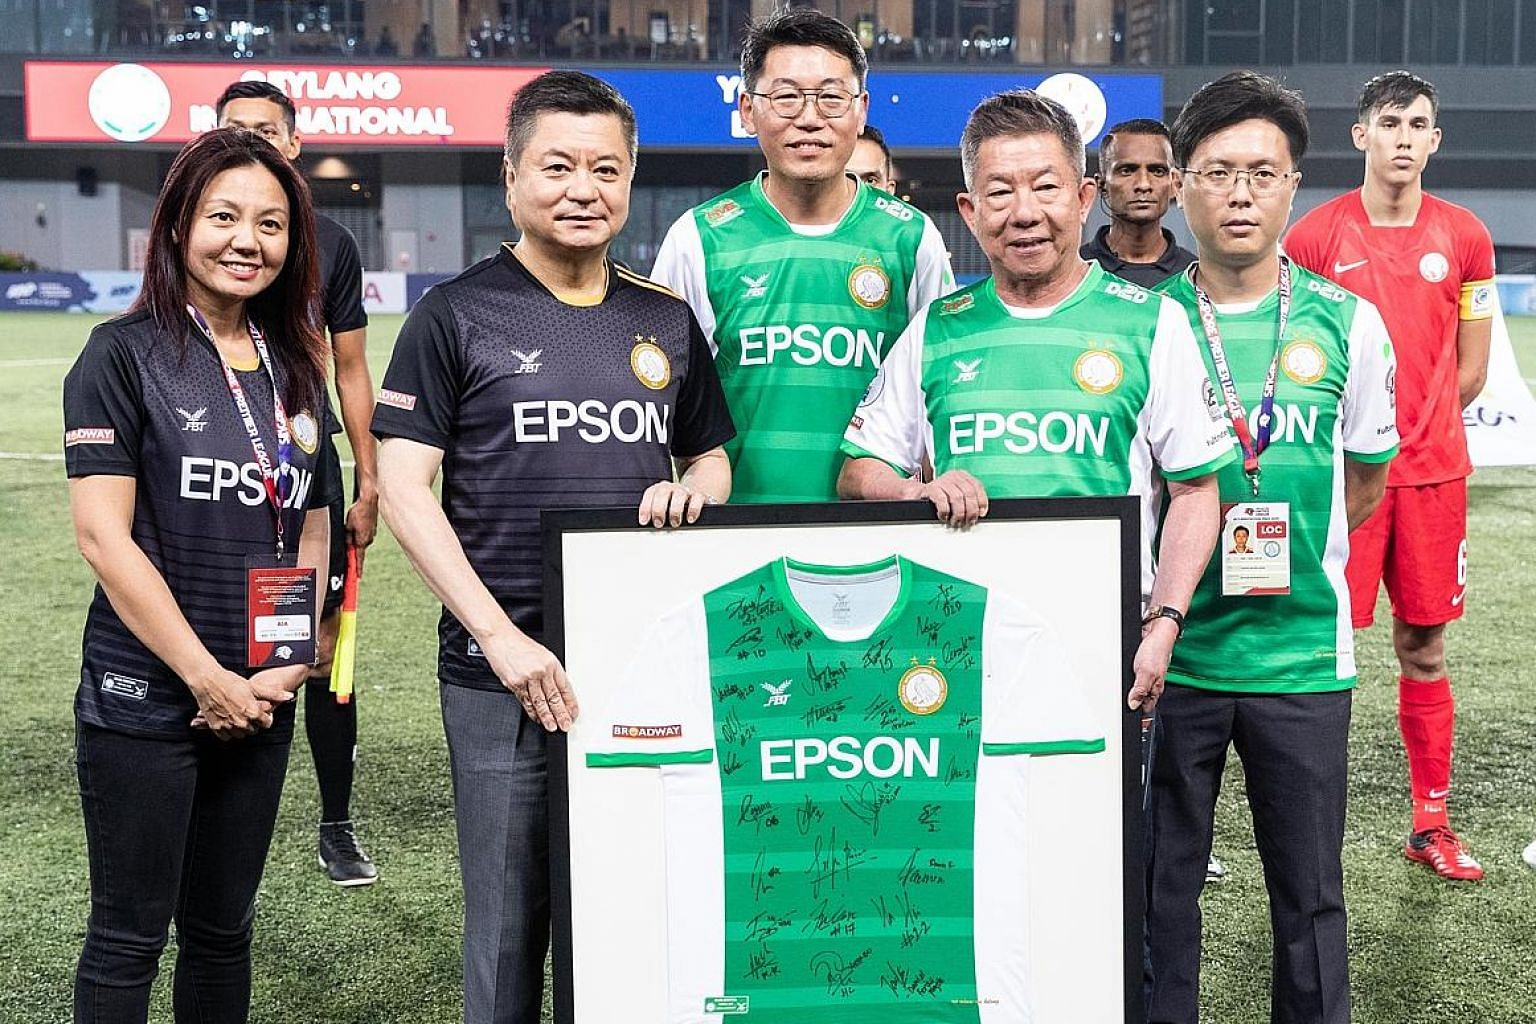 Geylang International will partner electronics firm Epson Singapore for a fifth consecutive year after they inked a season-long sponsorship extension yesterday. The signing ceremony took place at Our Tampines Hub before Geylang's Singapore Premier Le